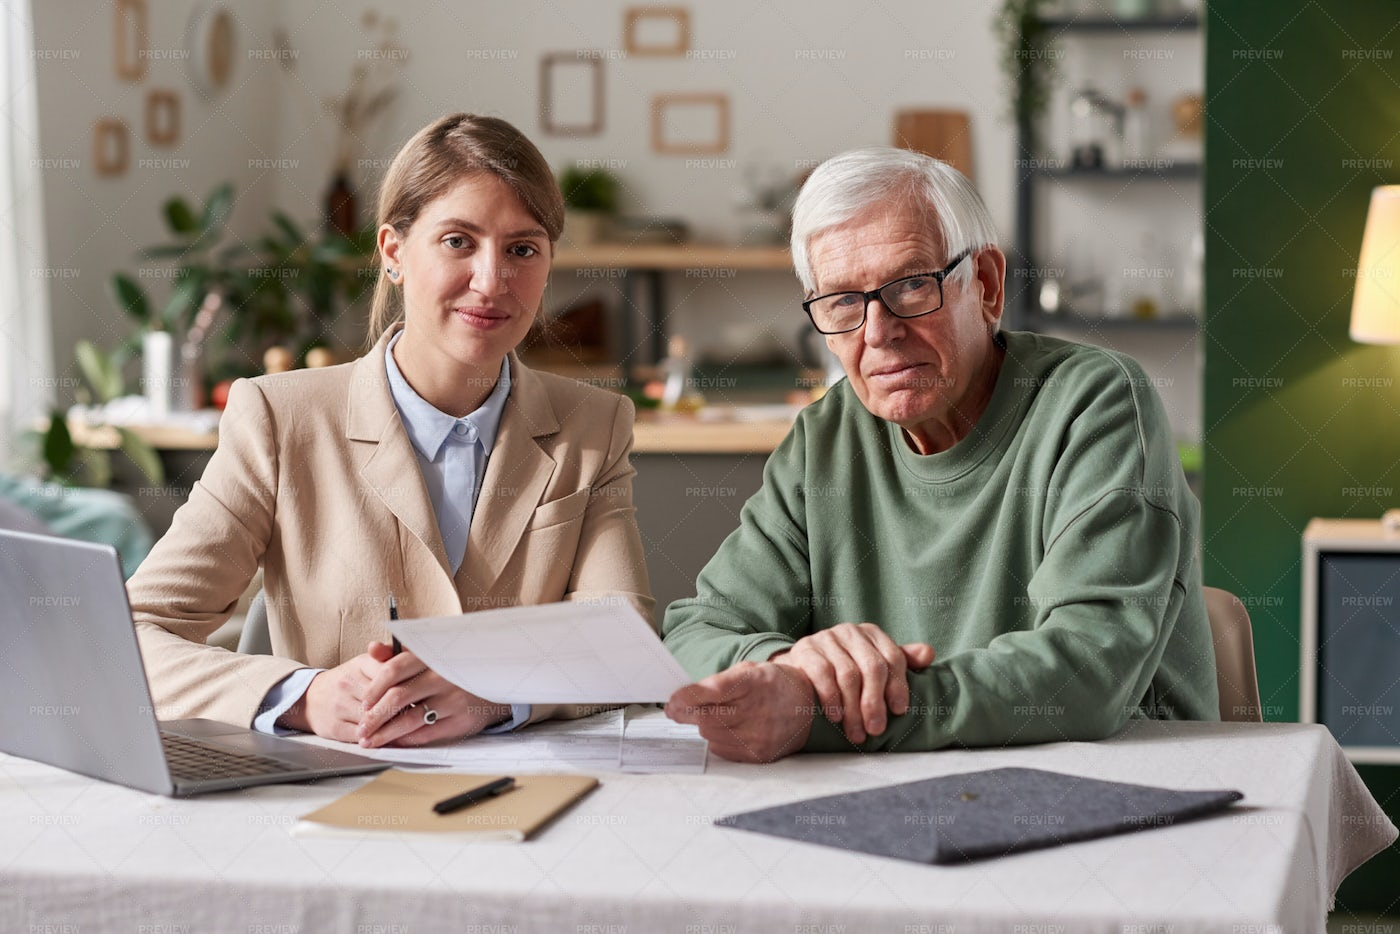 Business Meeting With Consultant: Stock Photos